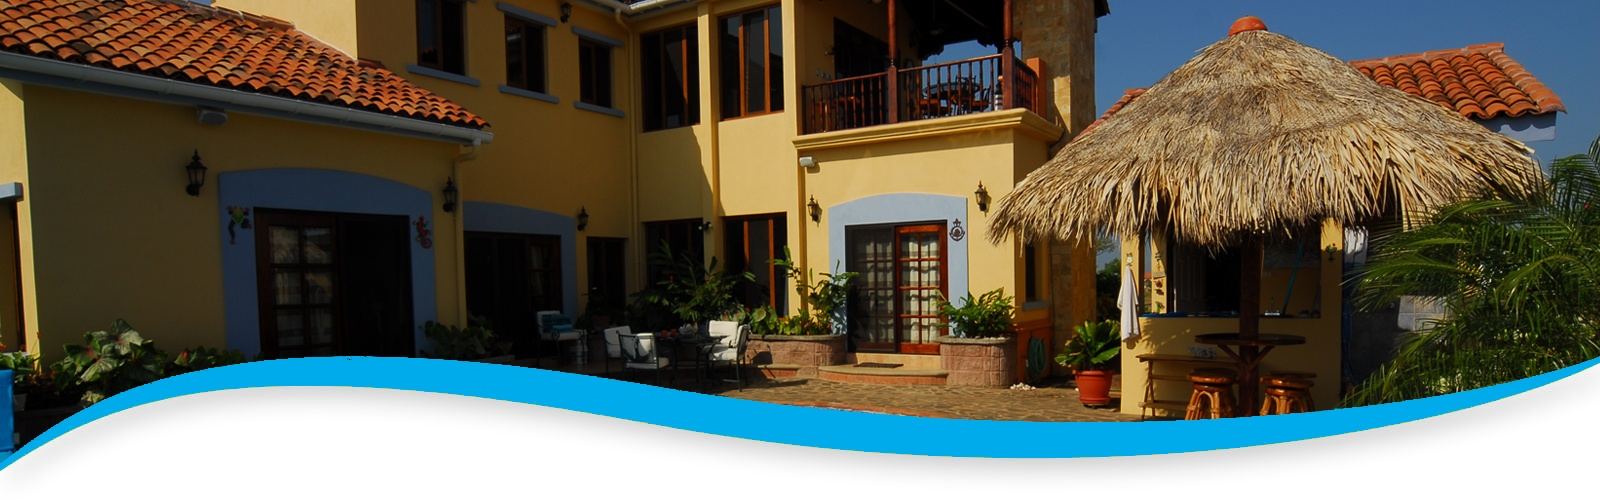 San Diego Viejo, Single Family Homes at Gran Pacifica Resort